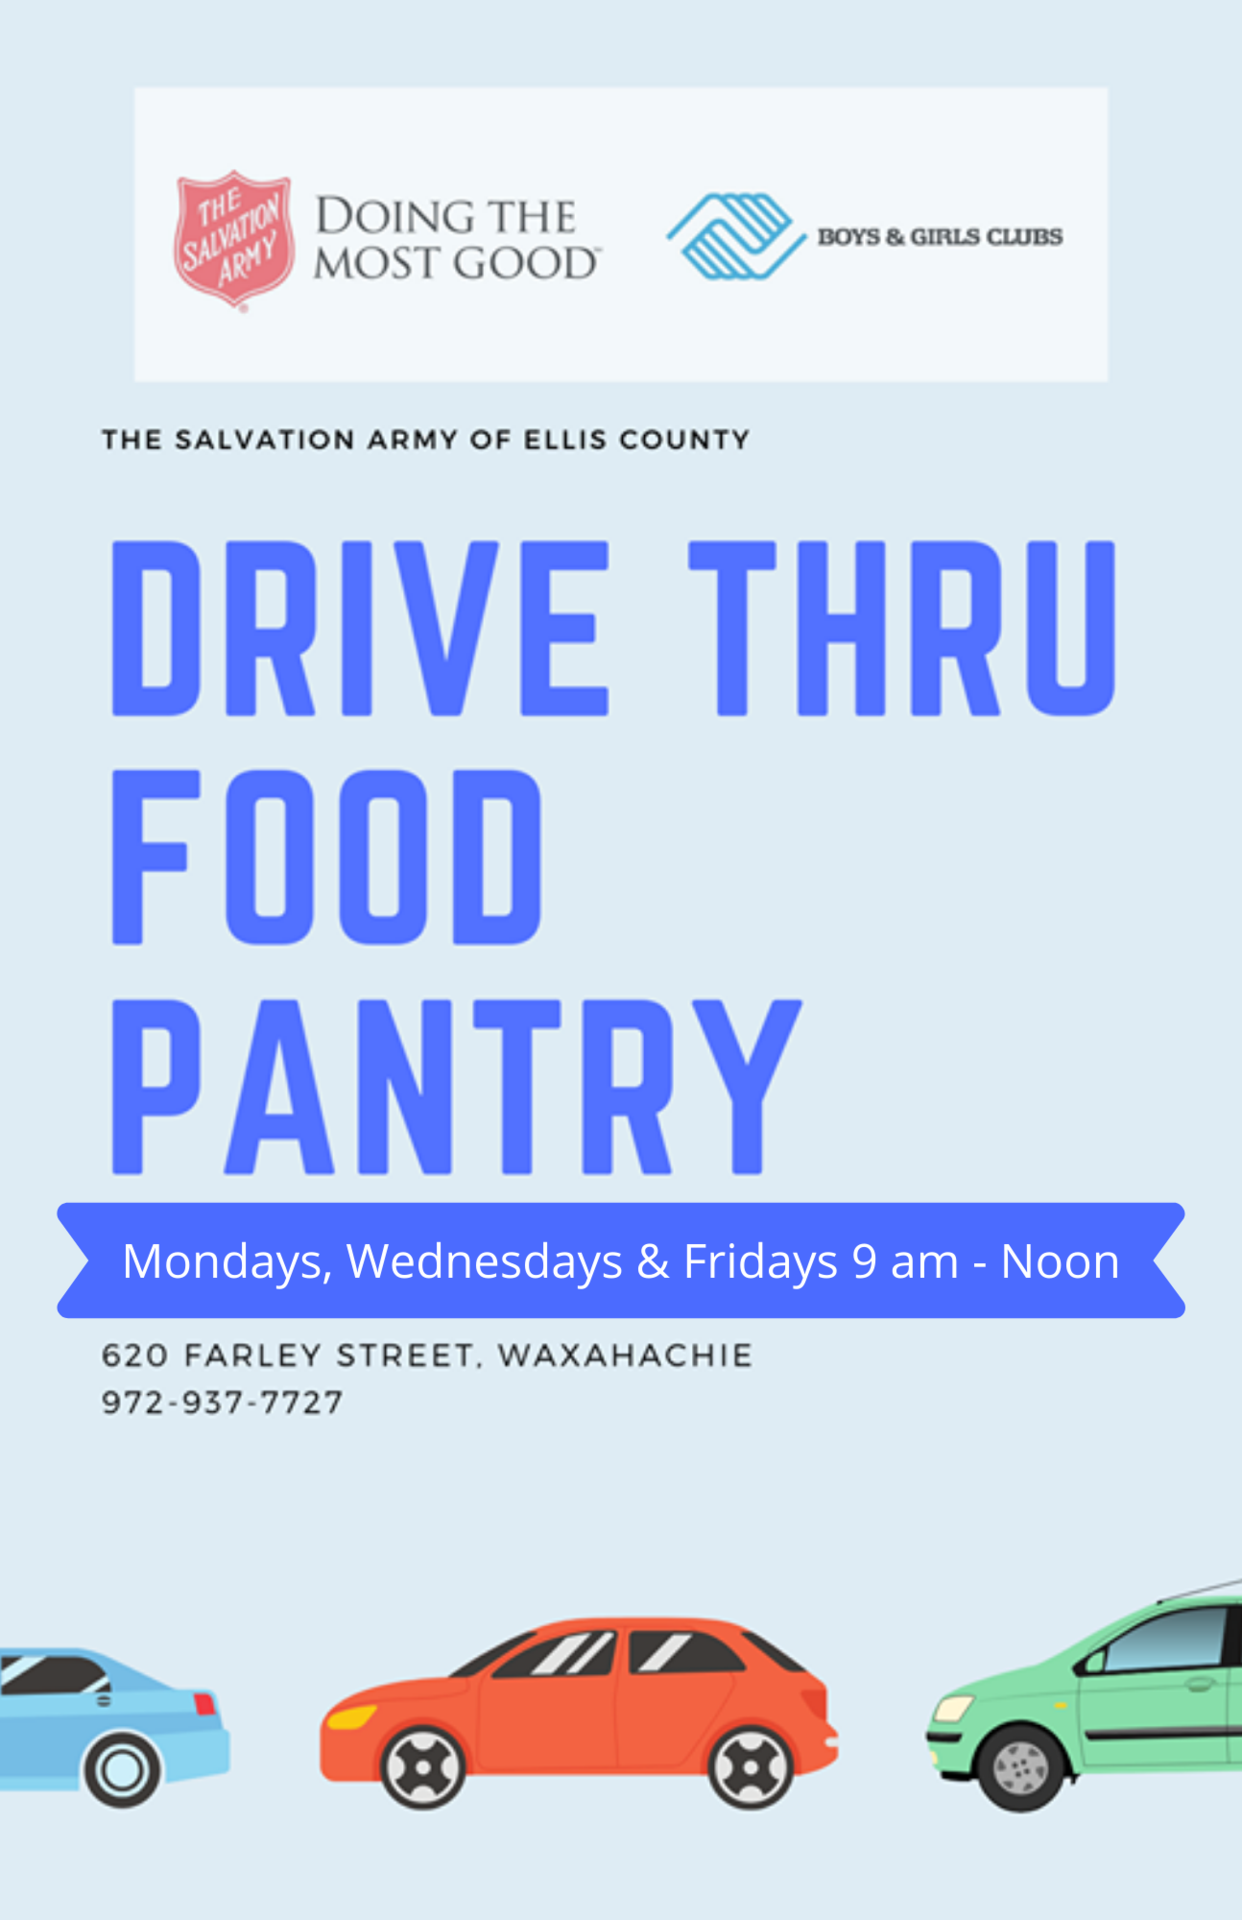 Salvation Army Drive Thru Food Pantry Monday-Friday from 9 to noon